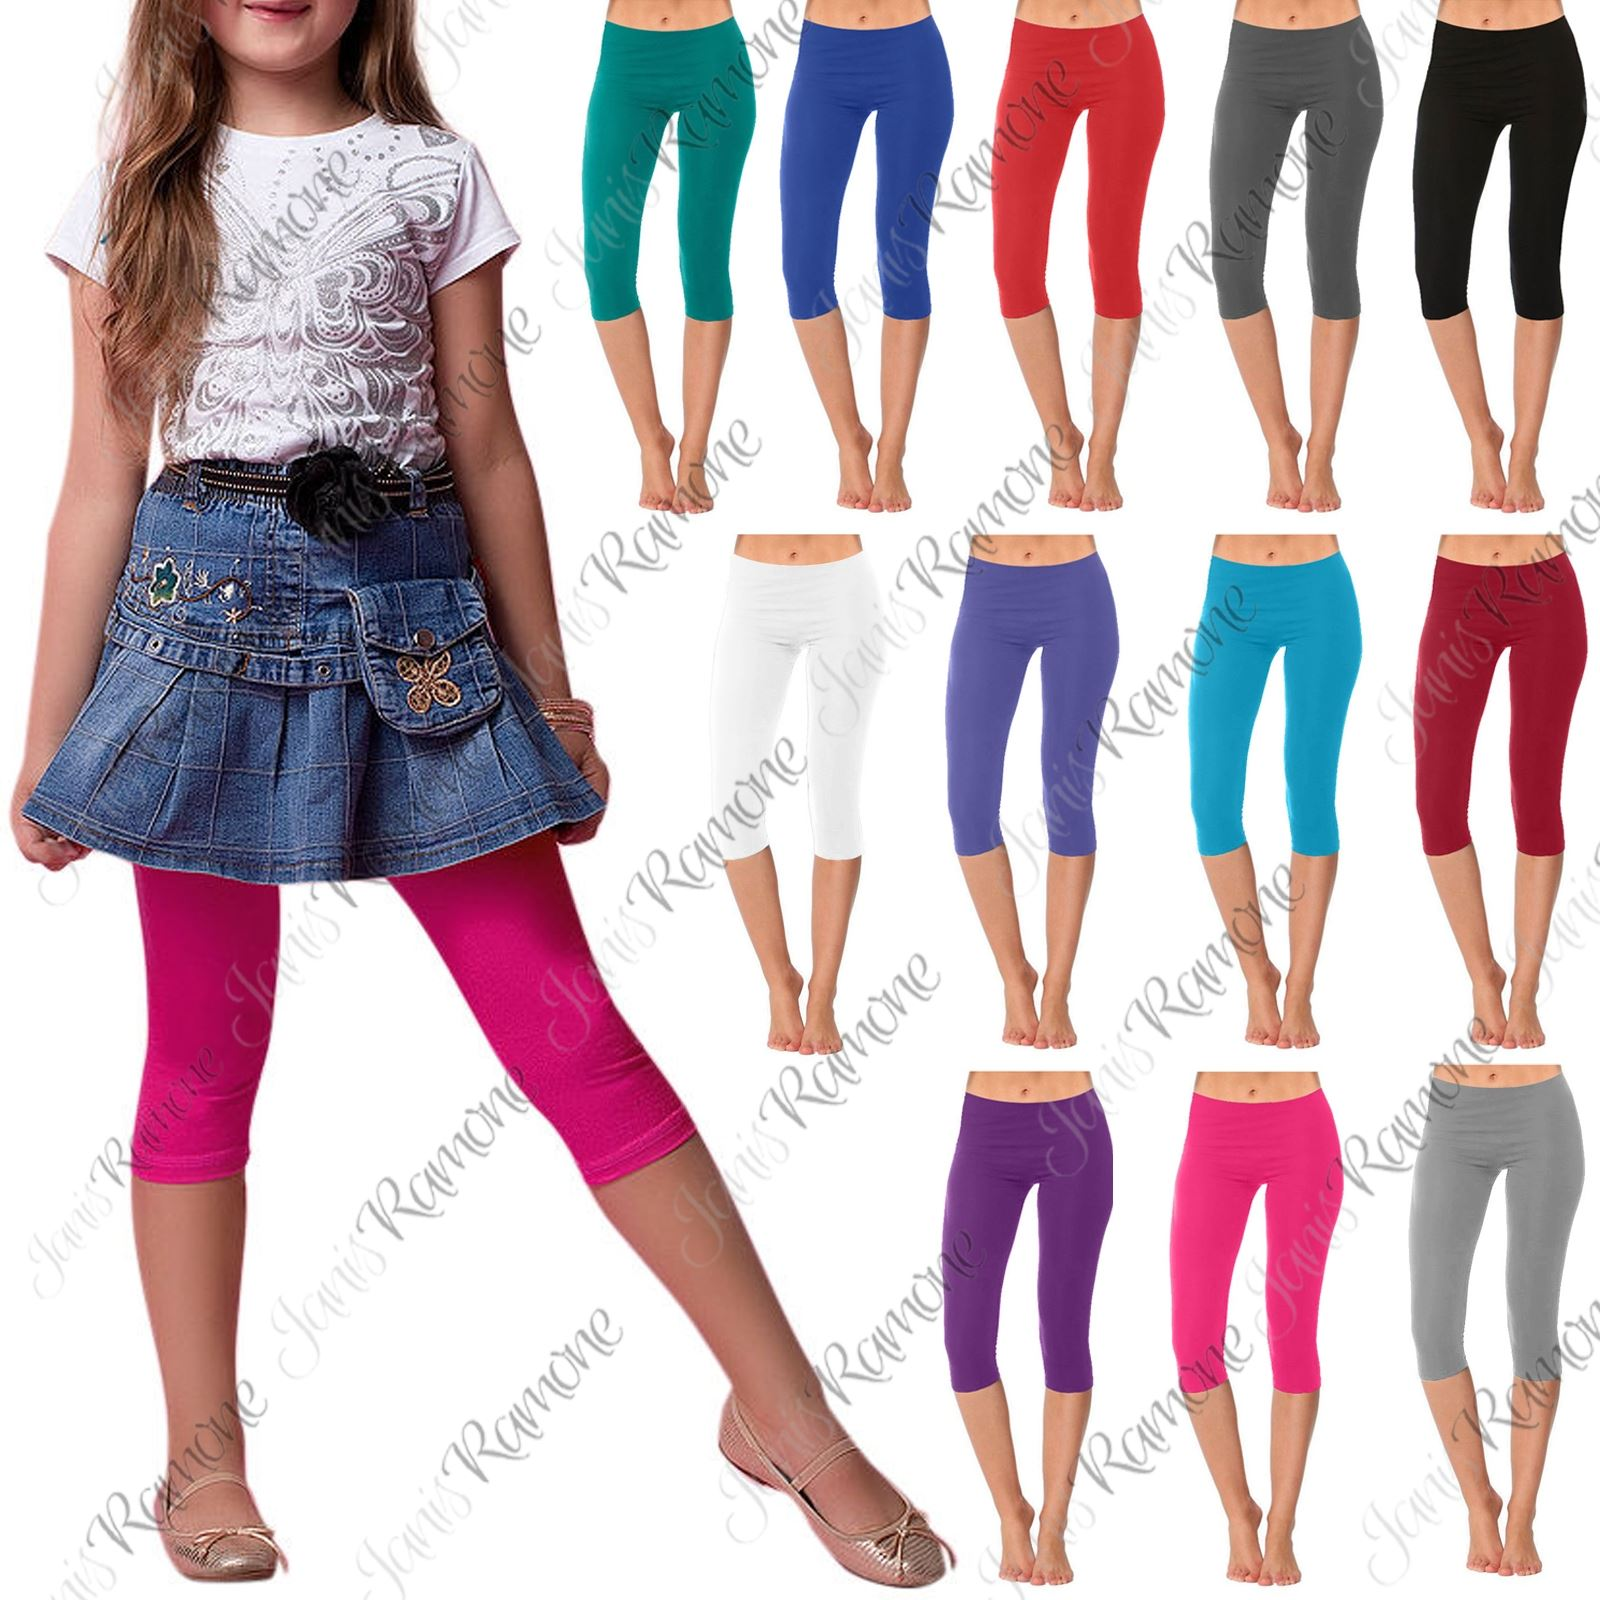 New Girls Kids Gymnastics Dance Cotton Plain Cropped 3//4 Leggings Capri Pants